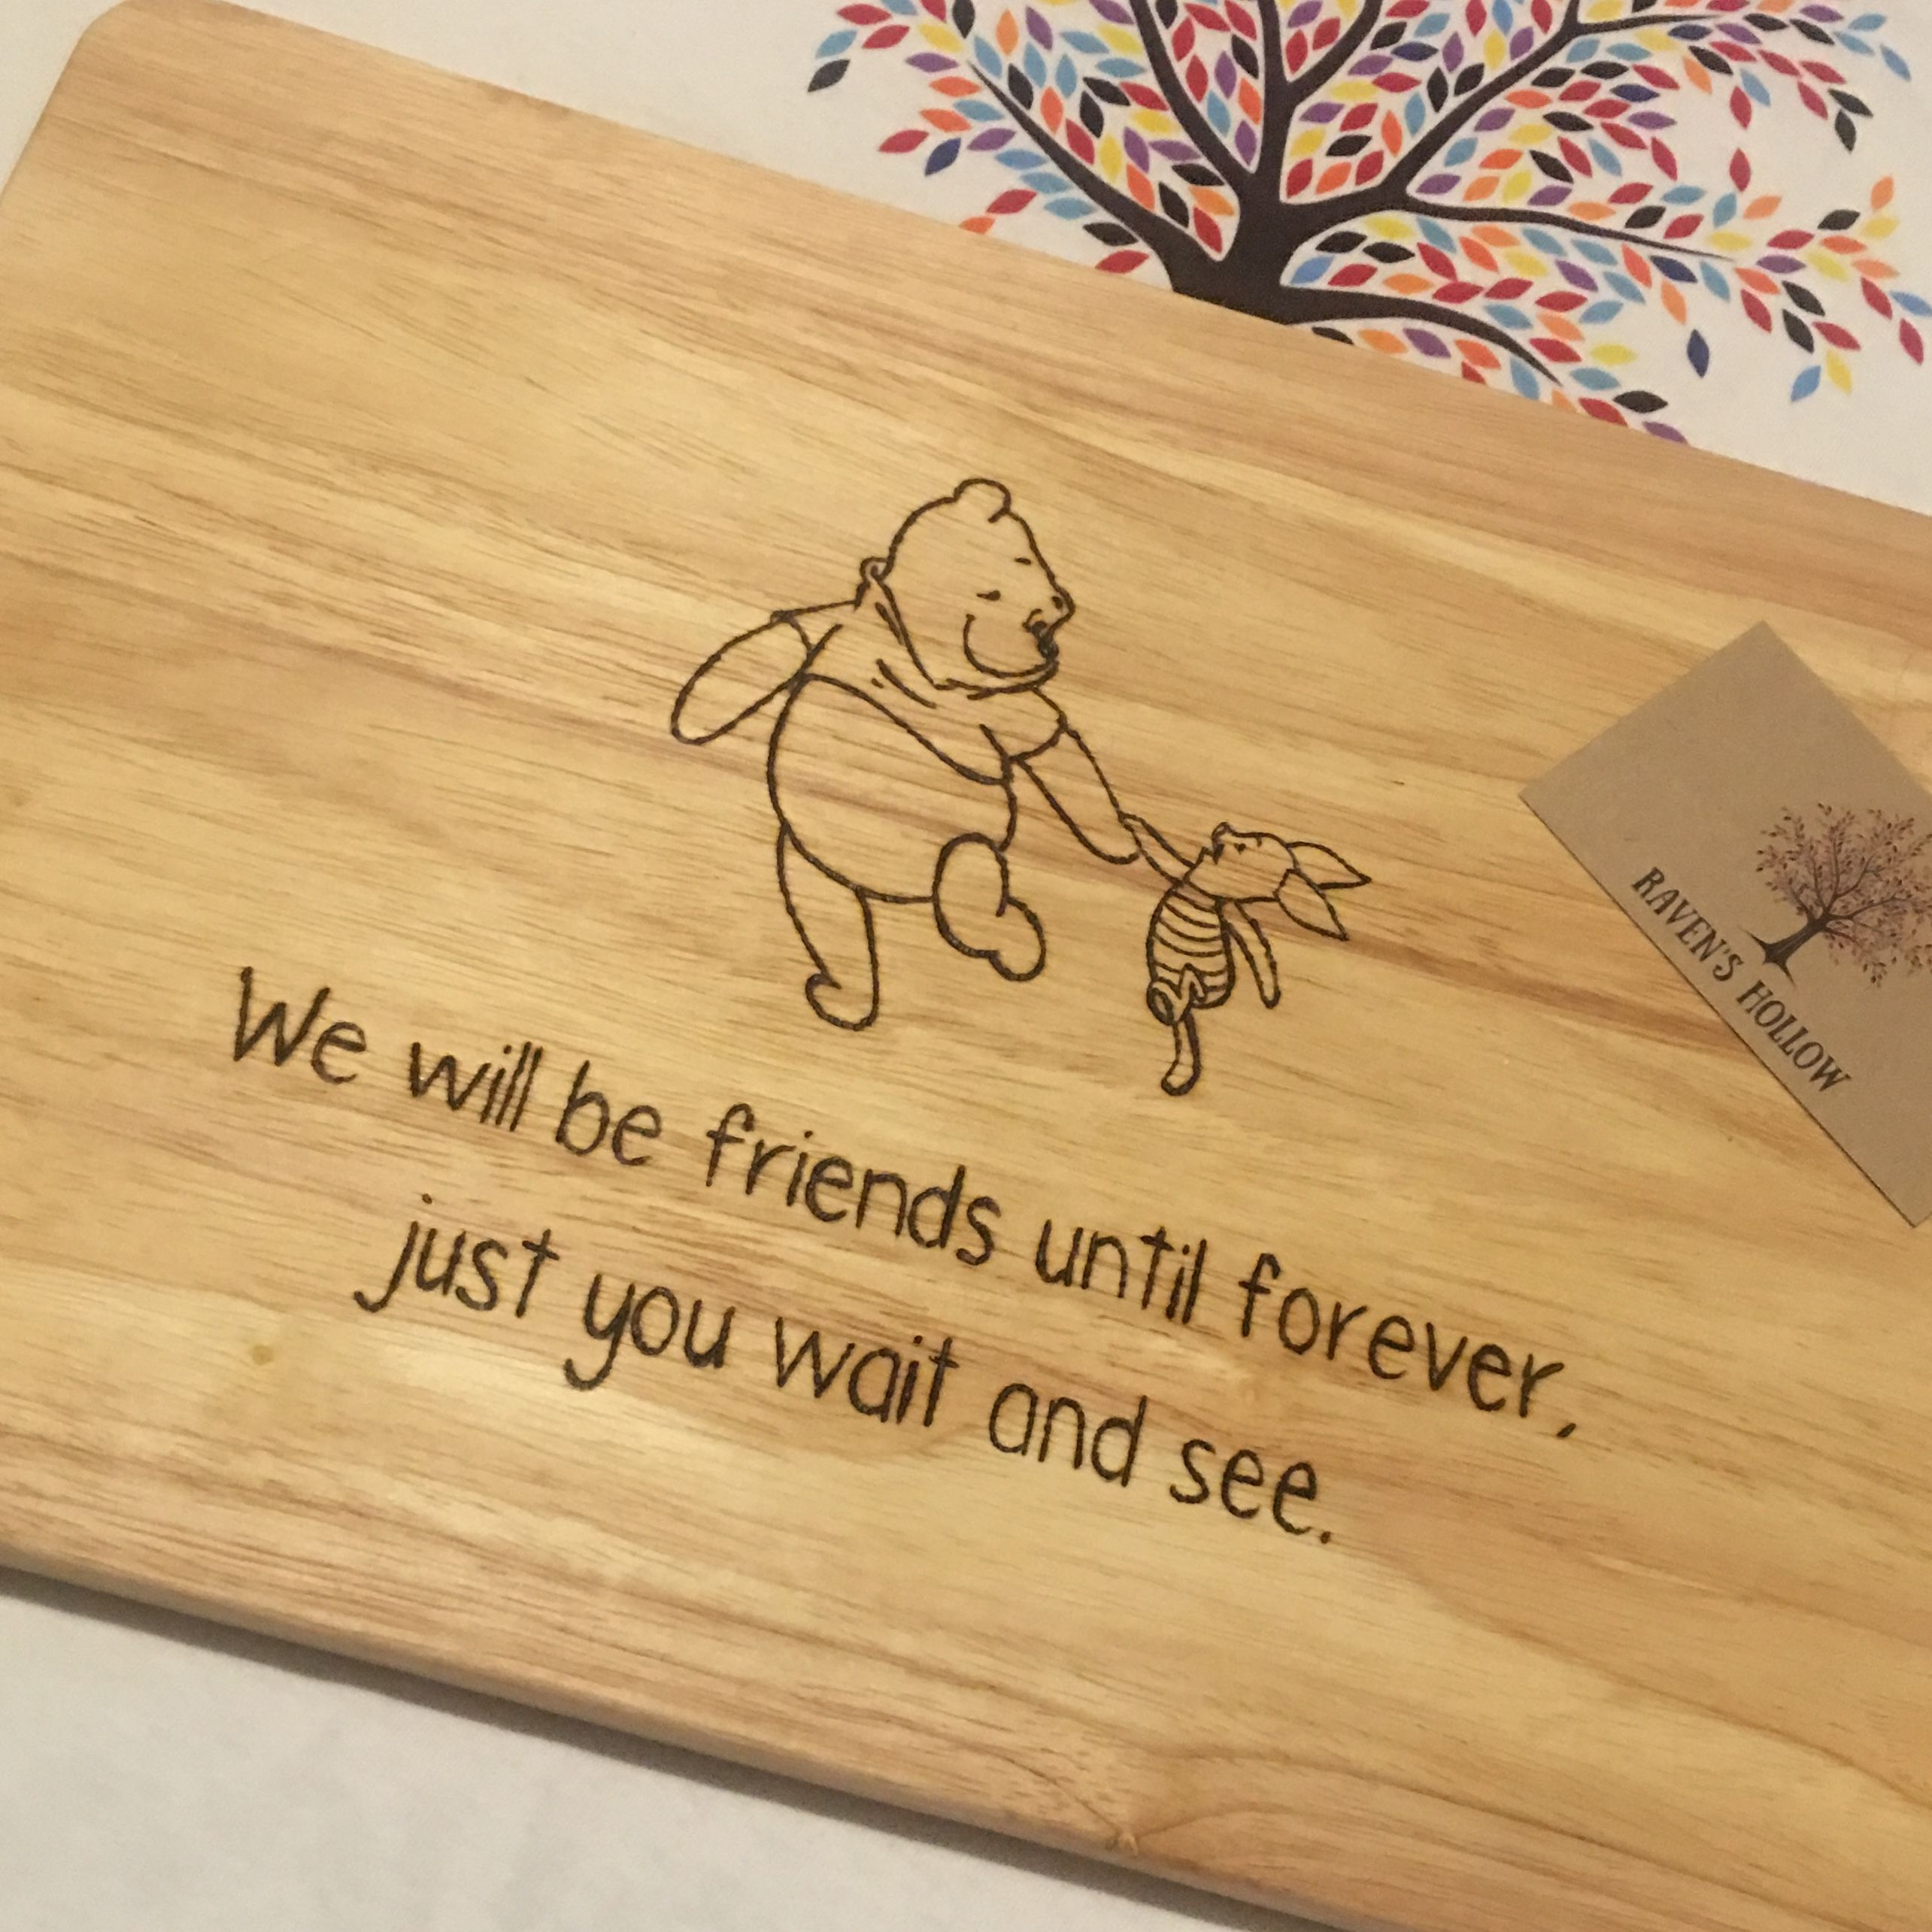 Winnie The Pooh Disney Inspired Chopping Board Pyrography Friendship Quotes Wood Burning Stencils Wood Burning Crafts Christmas Art Projects